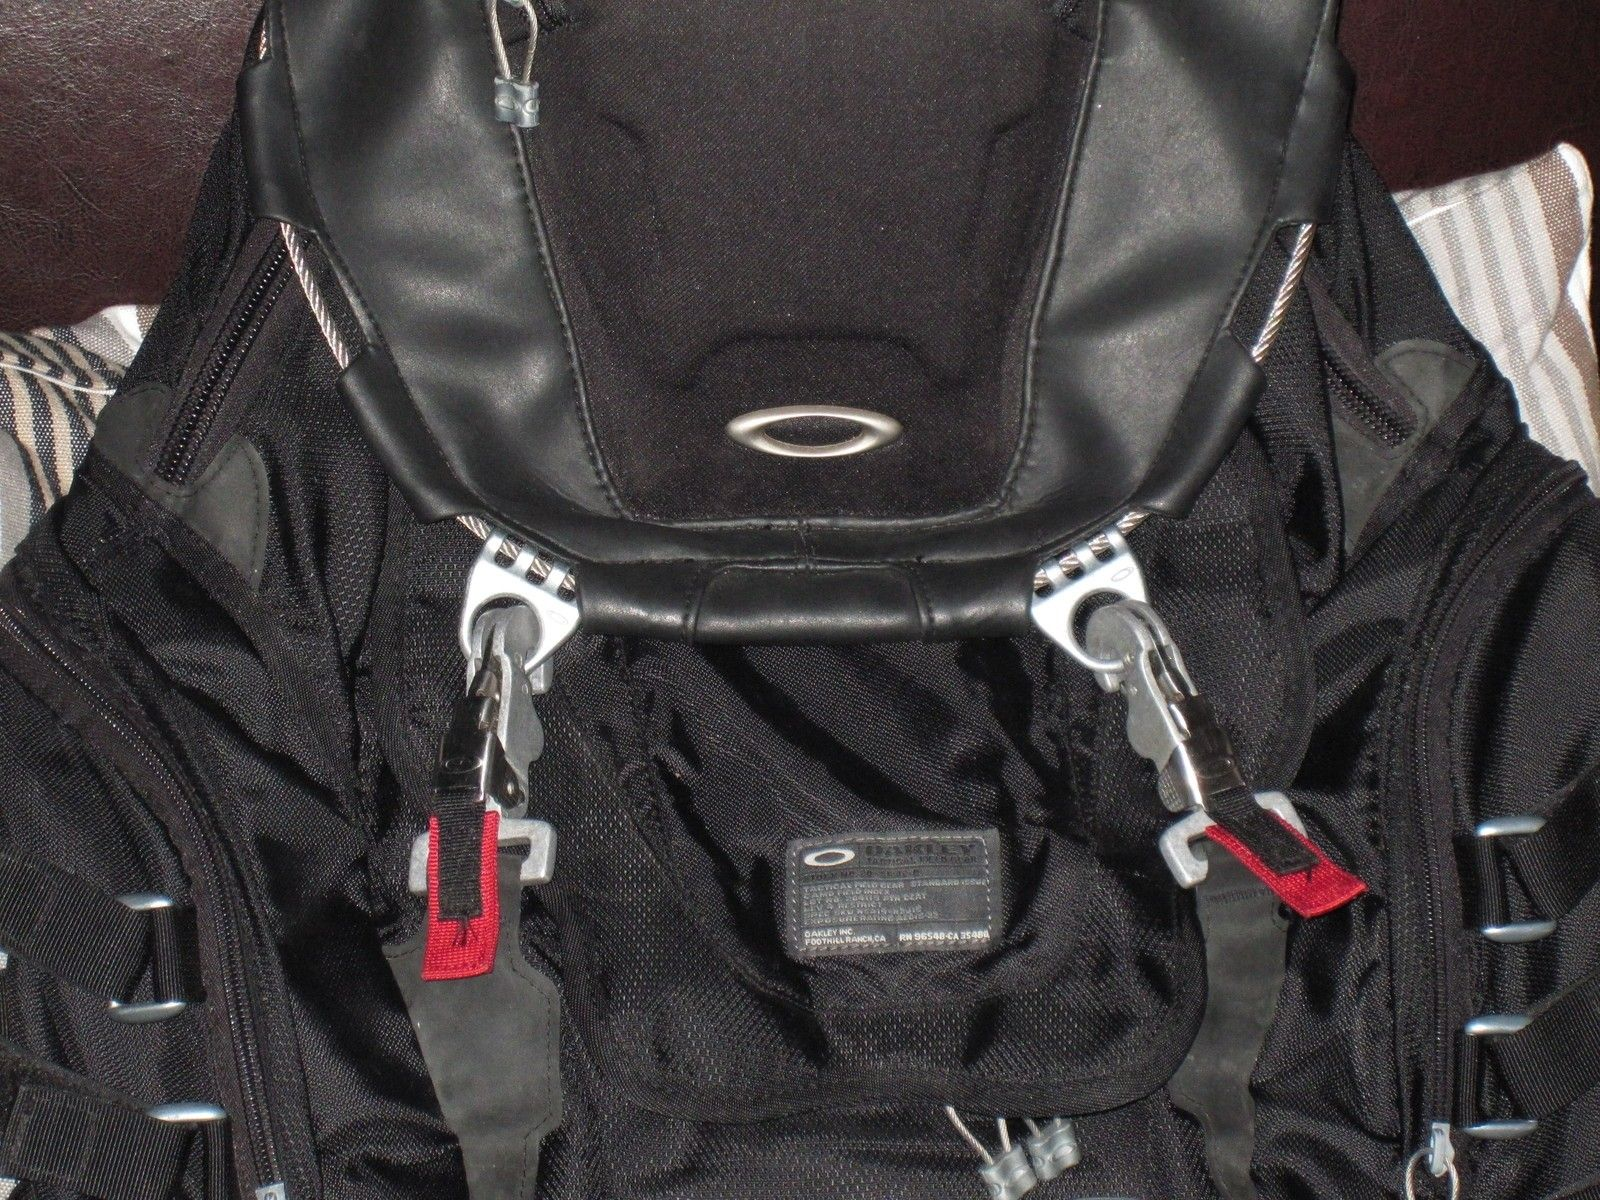 Kitchen Sink Backpack - IMG_0019.JPG